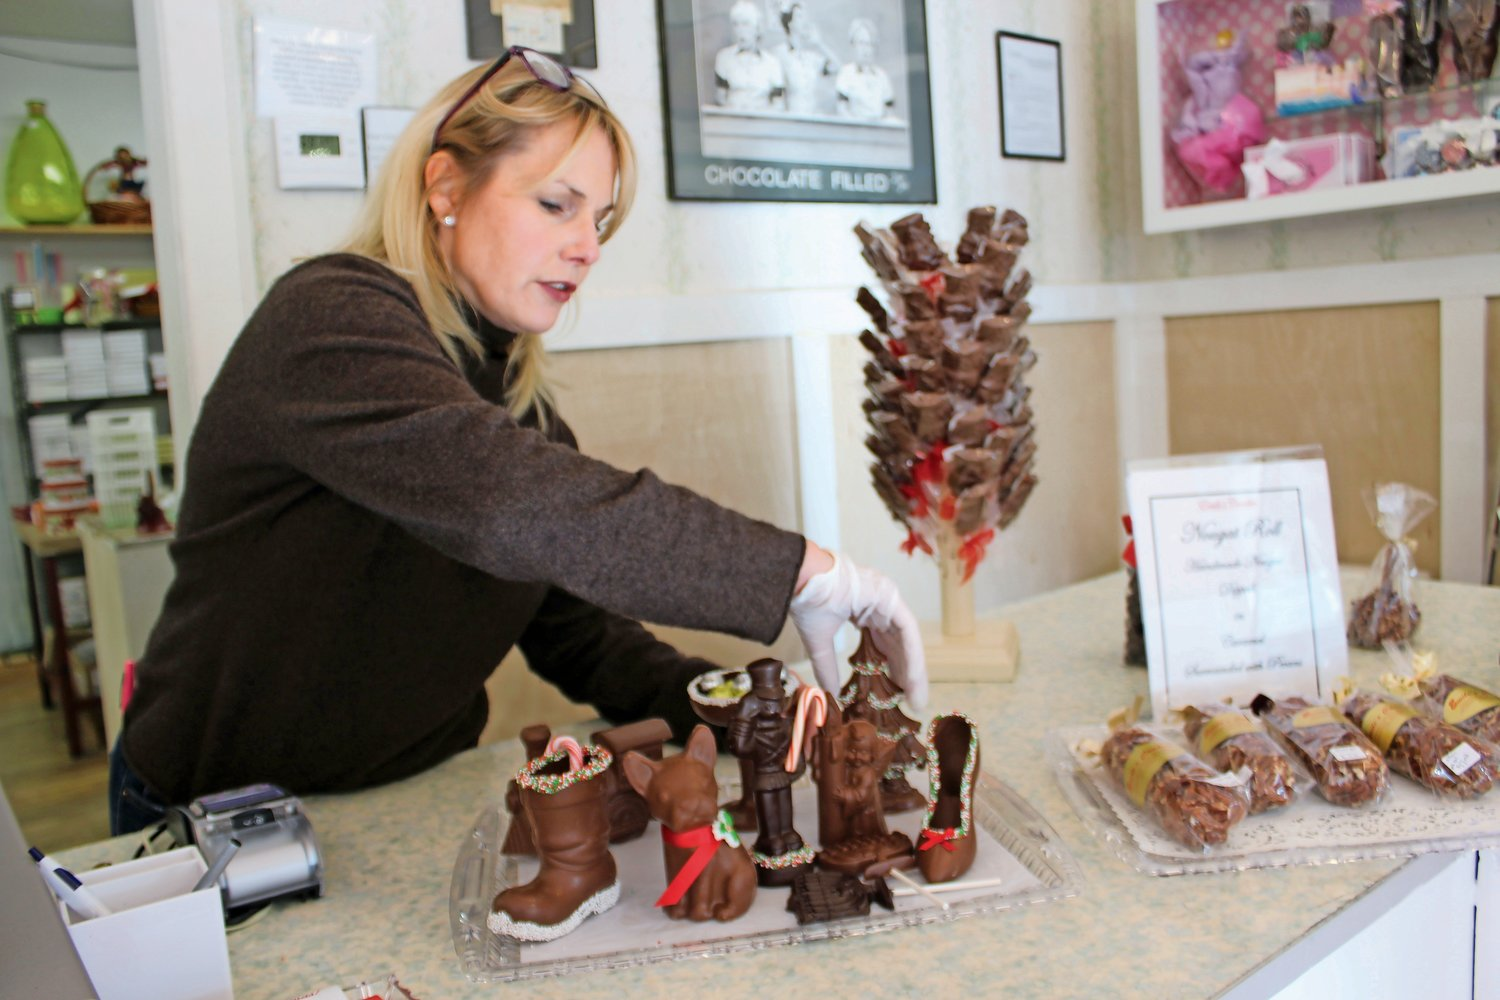 Jackie Brown, owner of Emile's for the past two years, is selling chocolates in festive shapes this holiday season. Each week, the shelves will be stocked with something different.